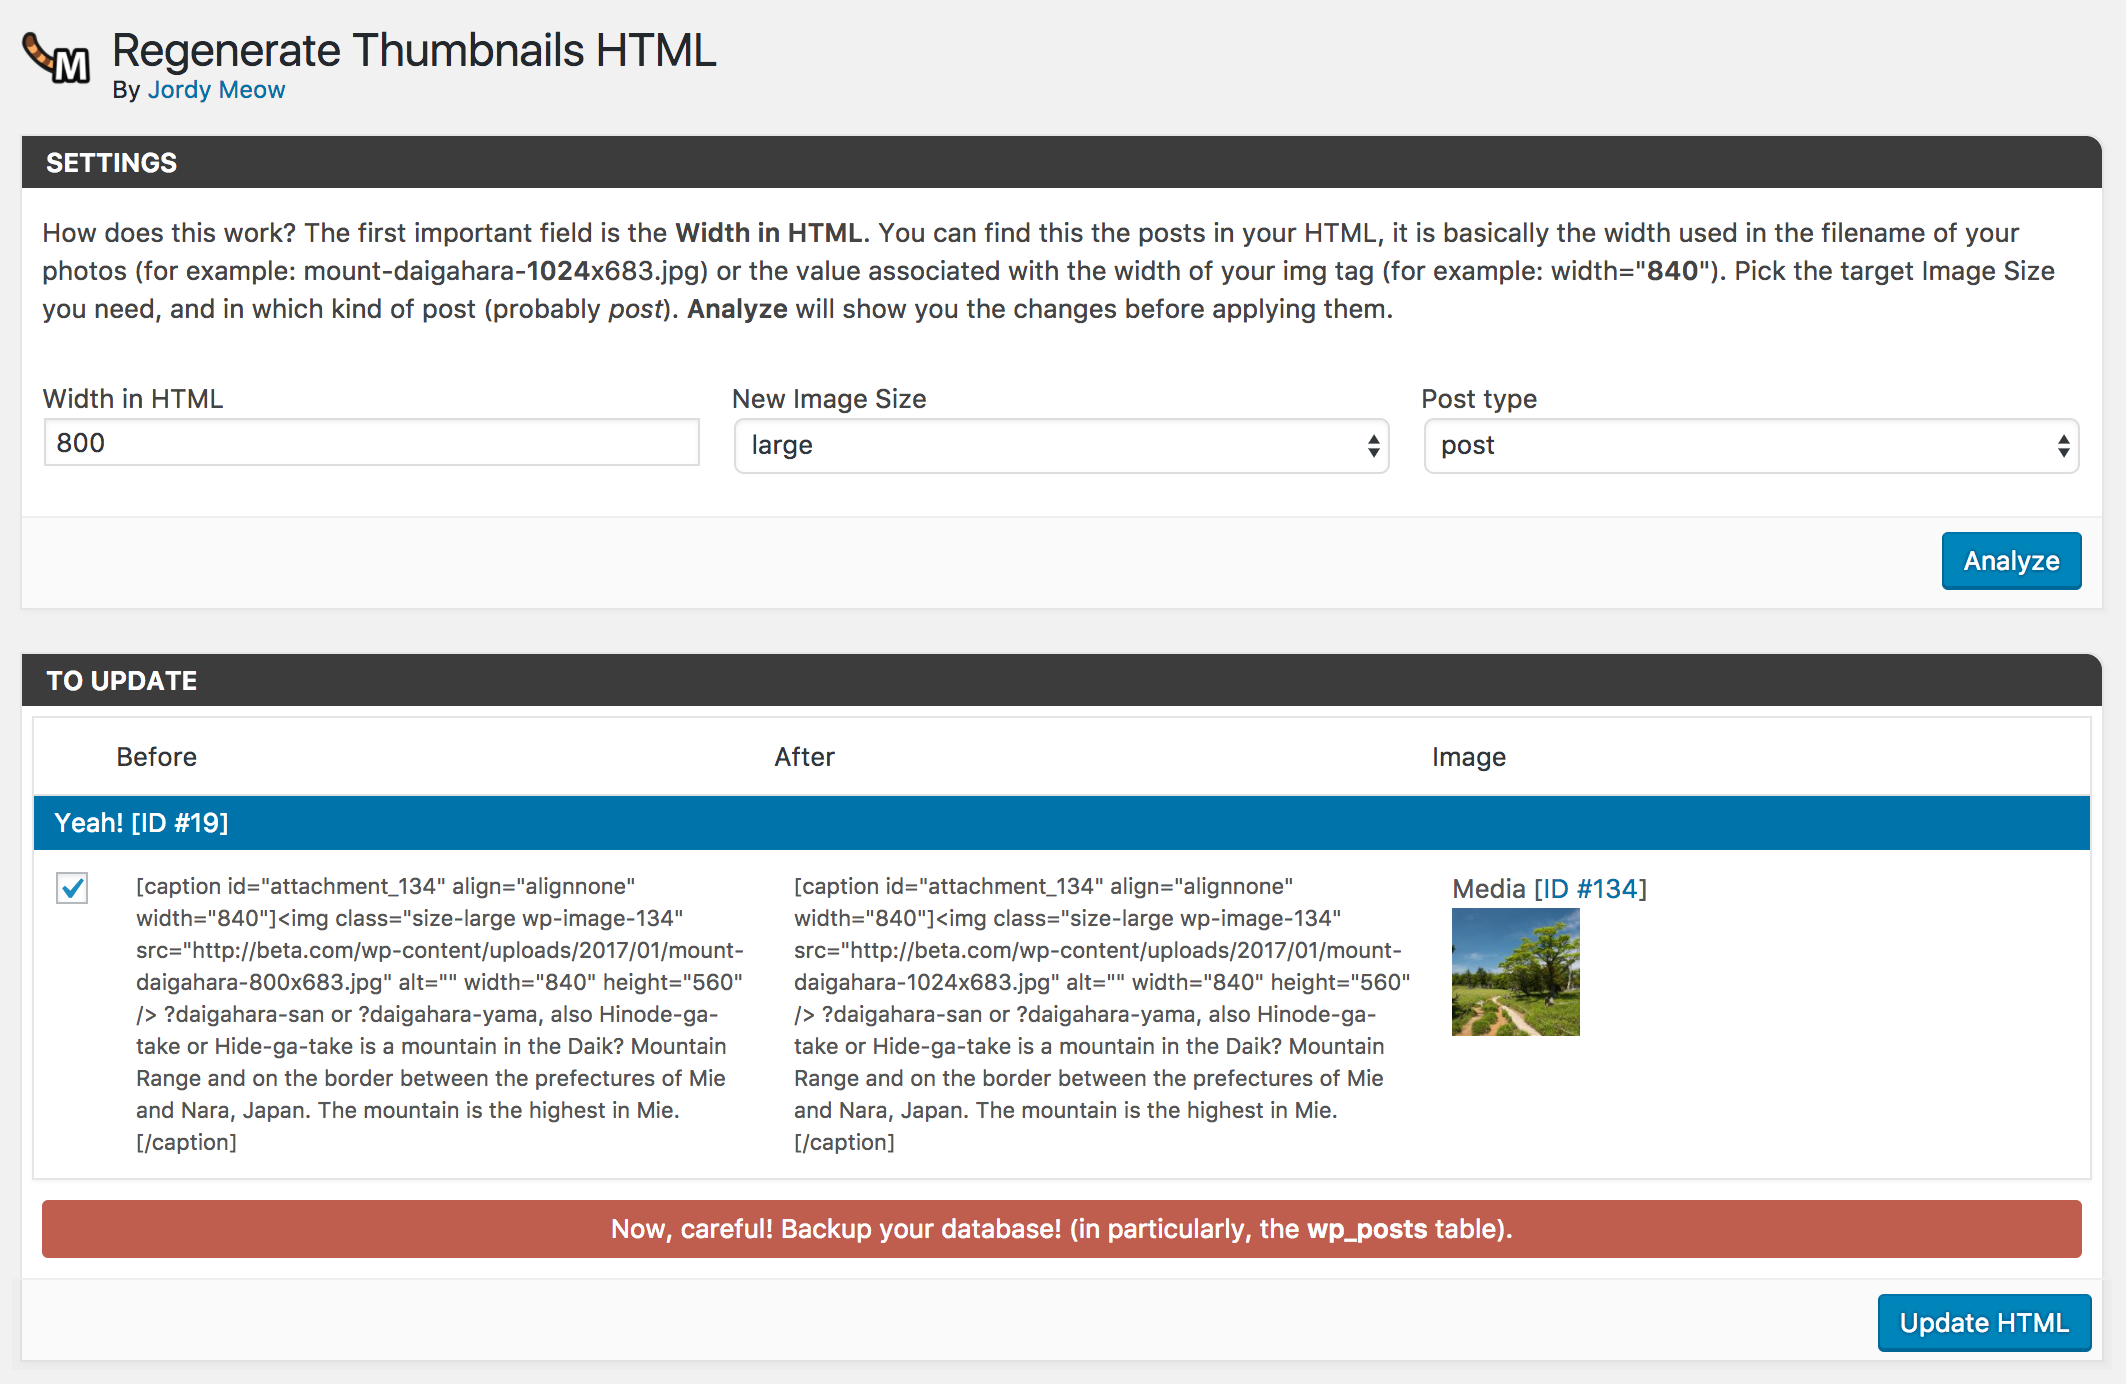 regenerate-thumbnails-html screenshot 1